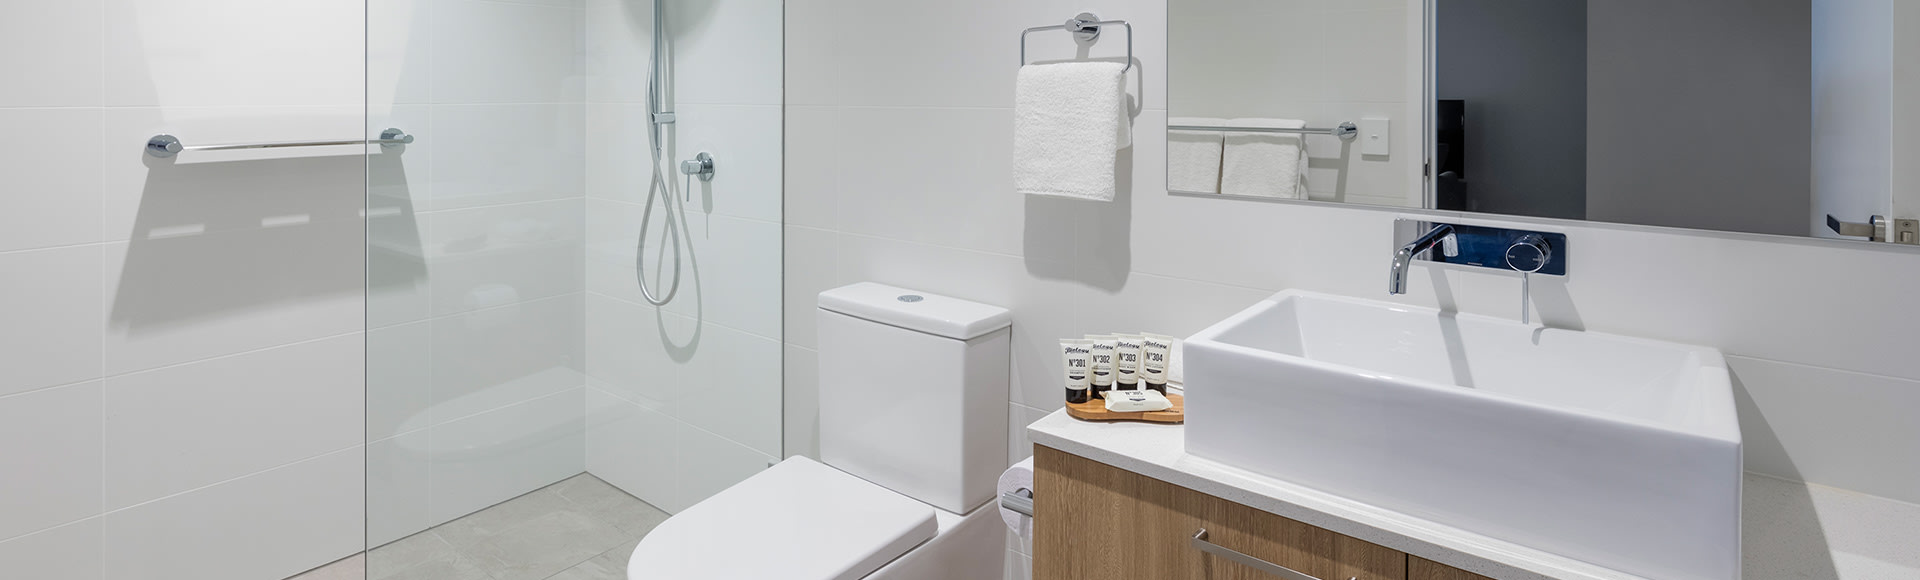 High quality bathroom amenities at Avani Adelaide